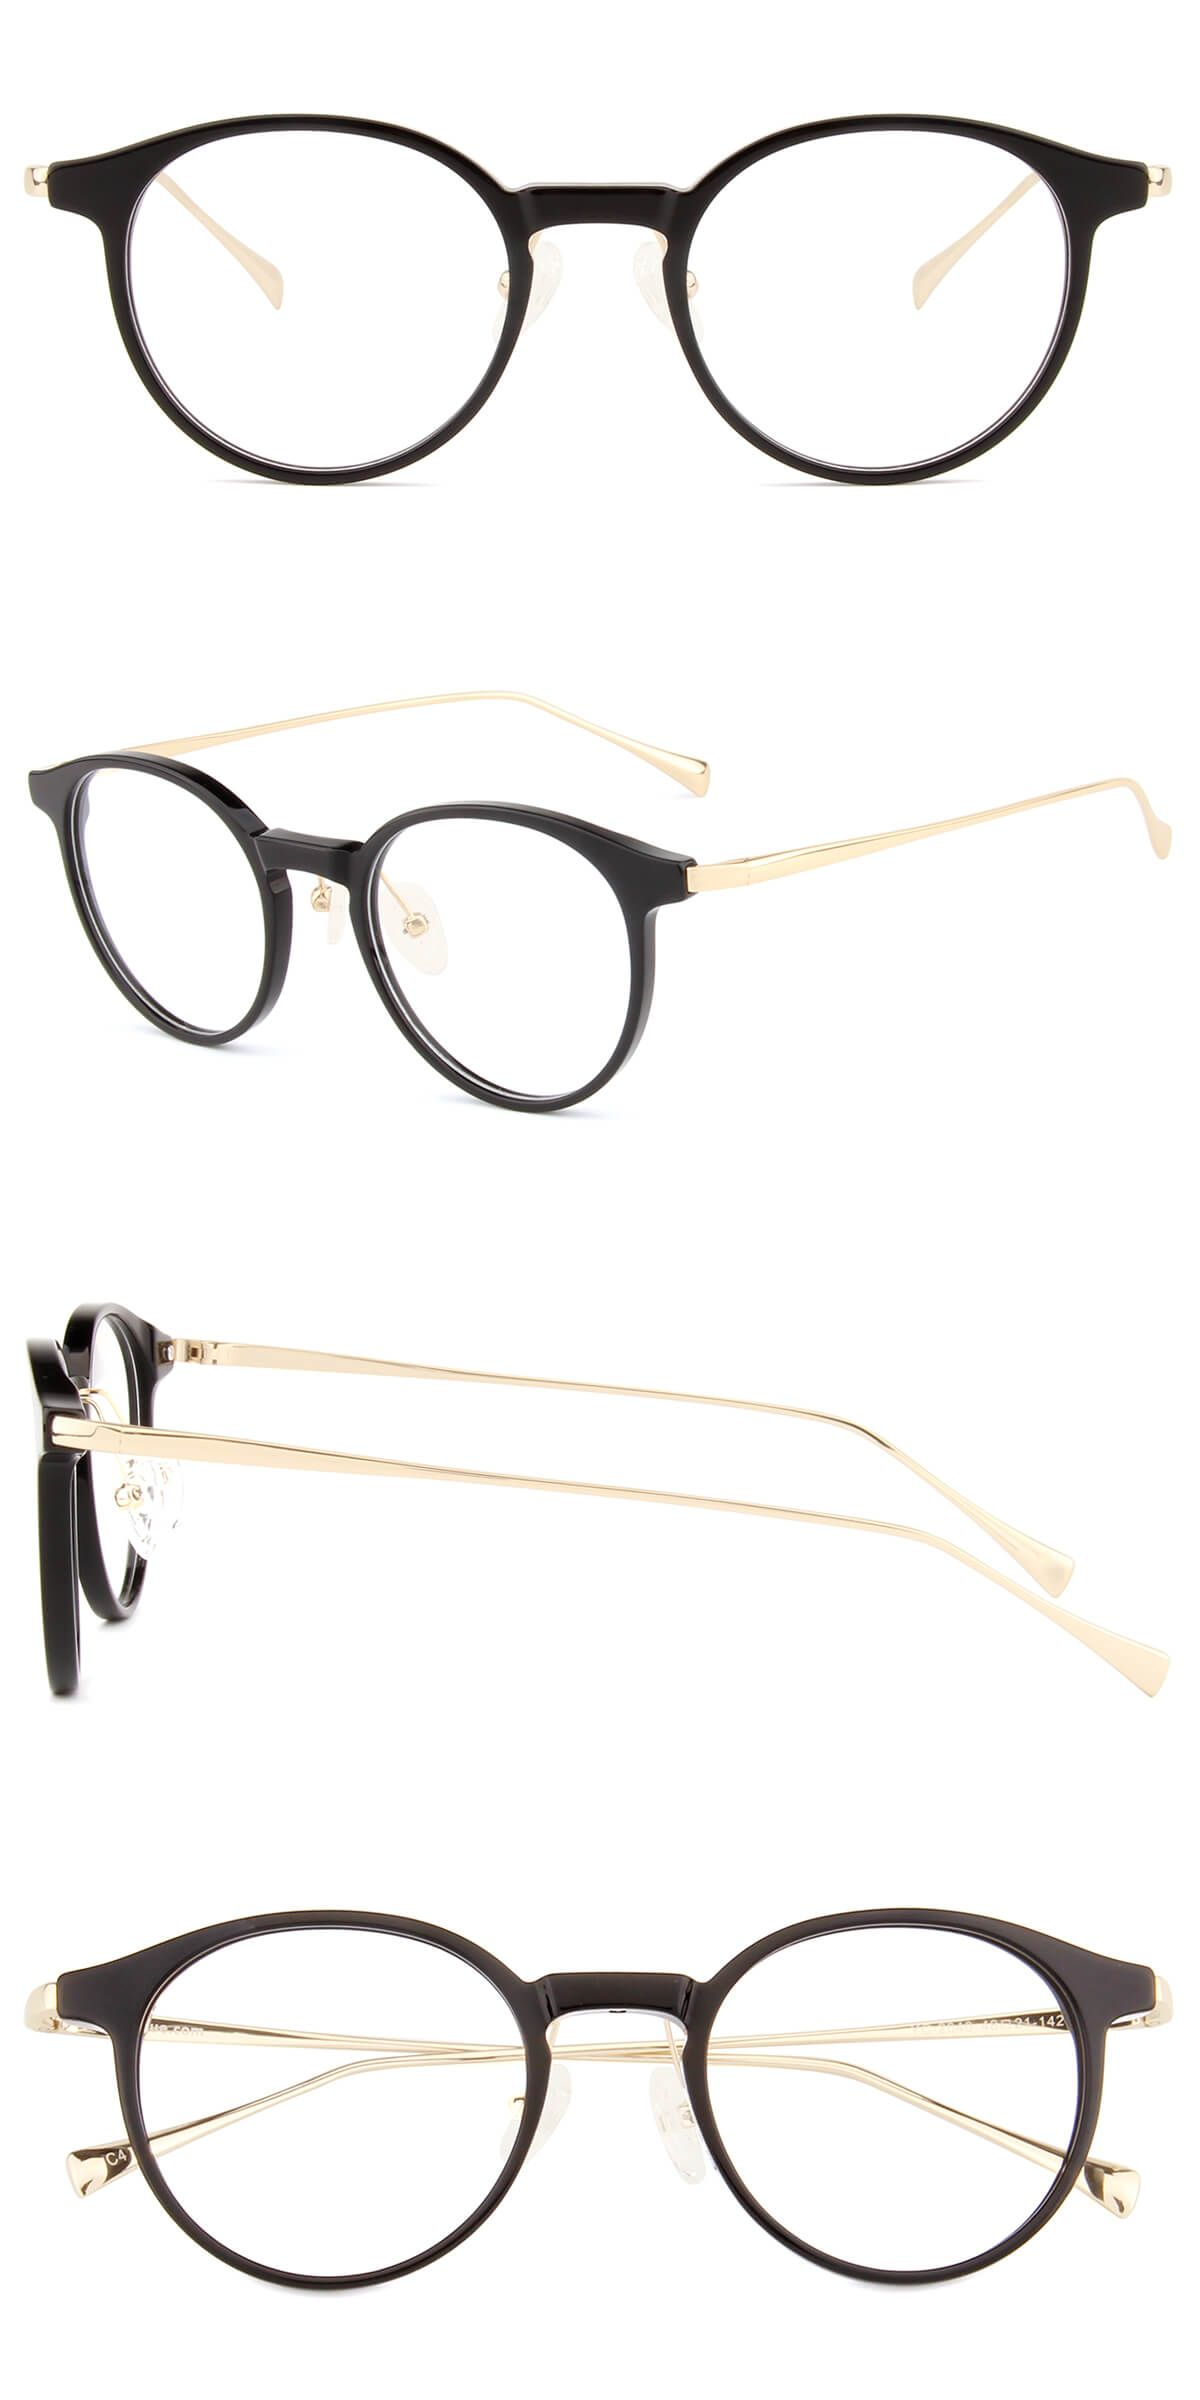 YC2040Black and Gold Retro glasses, Glasses fashion